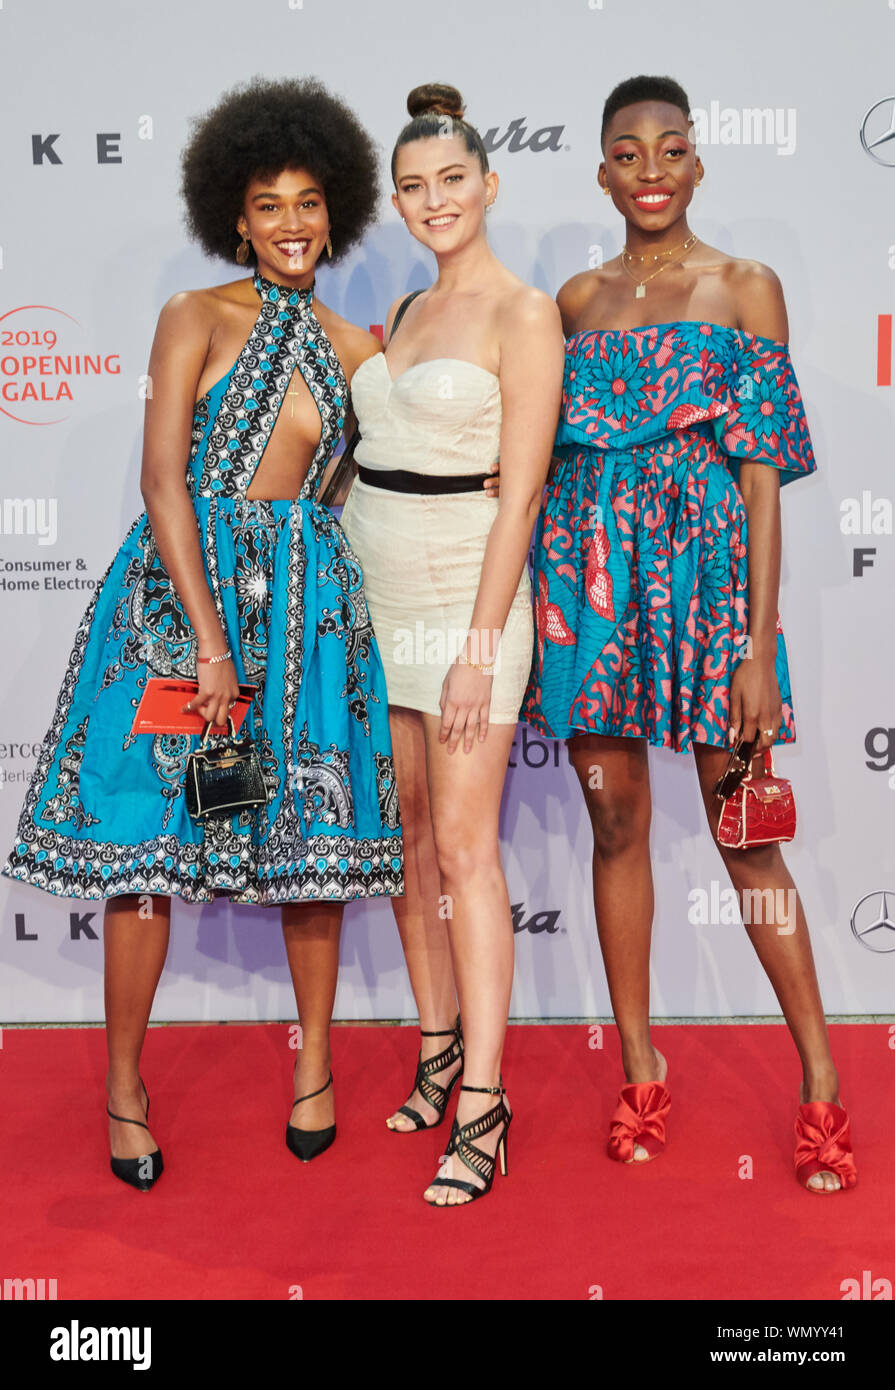 Berlin, Germany. 05th Sep, 2019. The models Georgette Tripes, Fata Hasanovic and Toni Dreher-Adenuga (l-r) come to the gala of the IFA opening. Credit: Annette Riedl/dpa/Alamy Live News Stock Photo